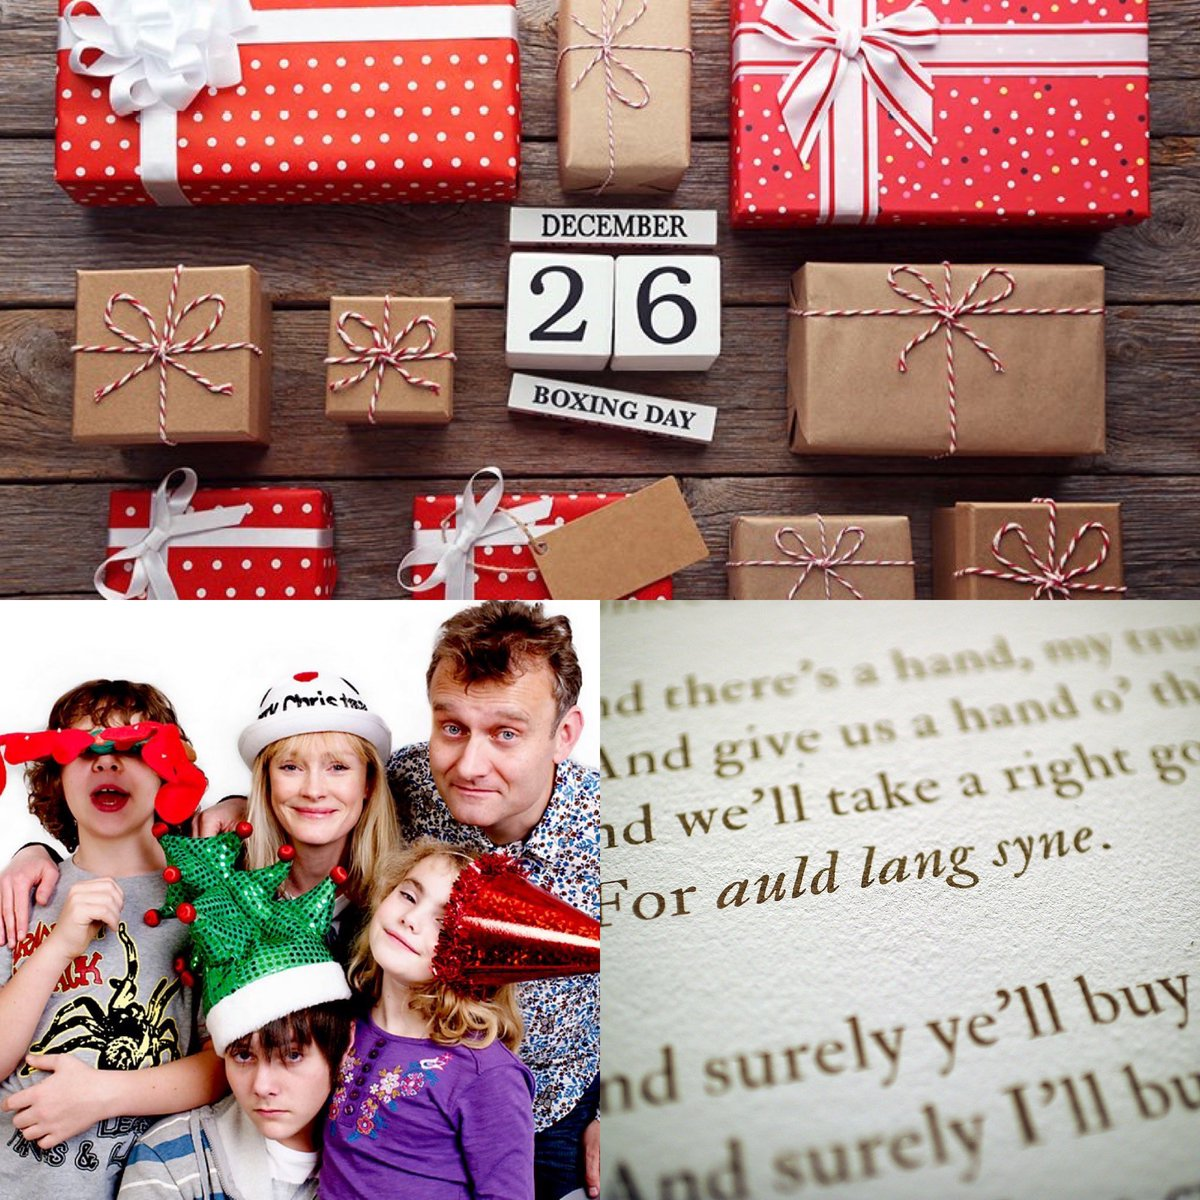 Merry Britsmas Episode 14 out now! Hear me ramble on about Boxing Day, Auld Lang Syne & a post Xmas special of Outnumbered! #xmas #boxingday #newyear #auldlangsyne #outnumbered #podcast #christmas #christmaspodcast #podcasting